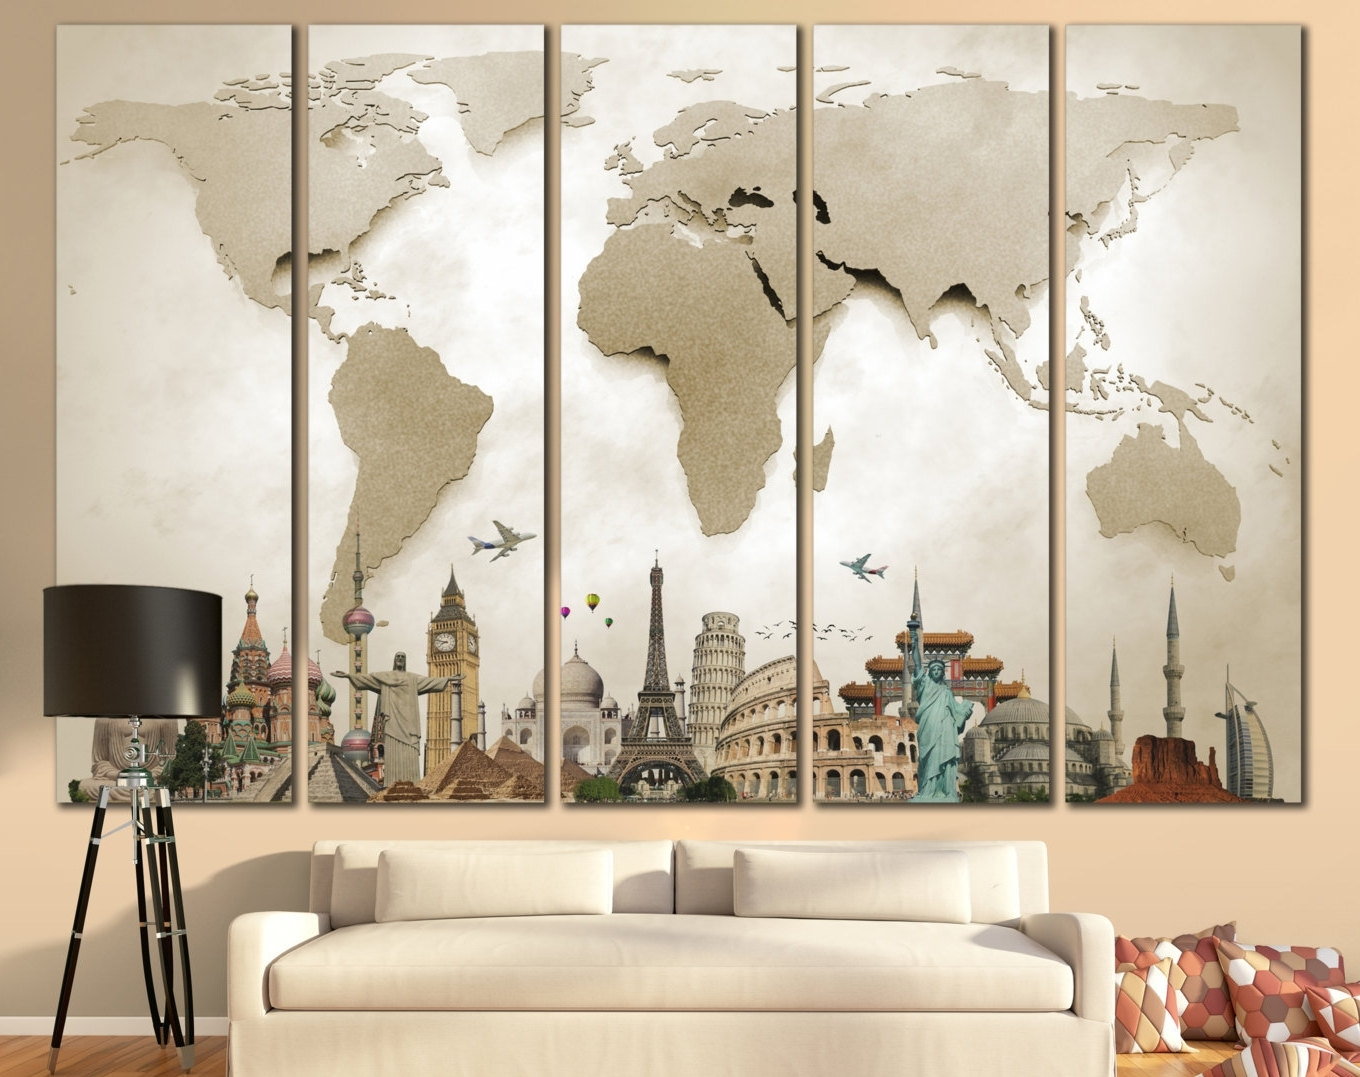 Large Wall Decor Ideas Maps : Amazing Large Wall Decor Ideas Options With Regard To 2018 Maps Wall Art (View 7 of 20)